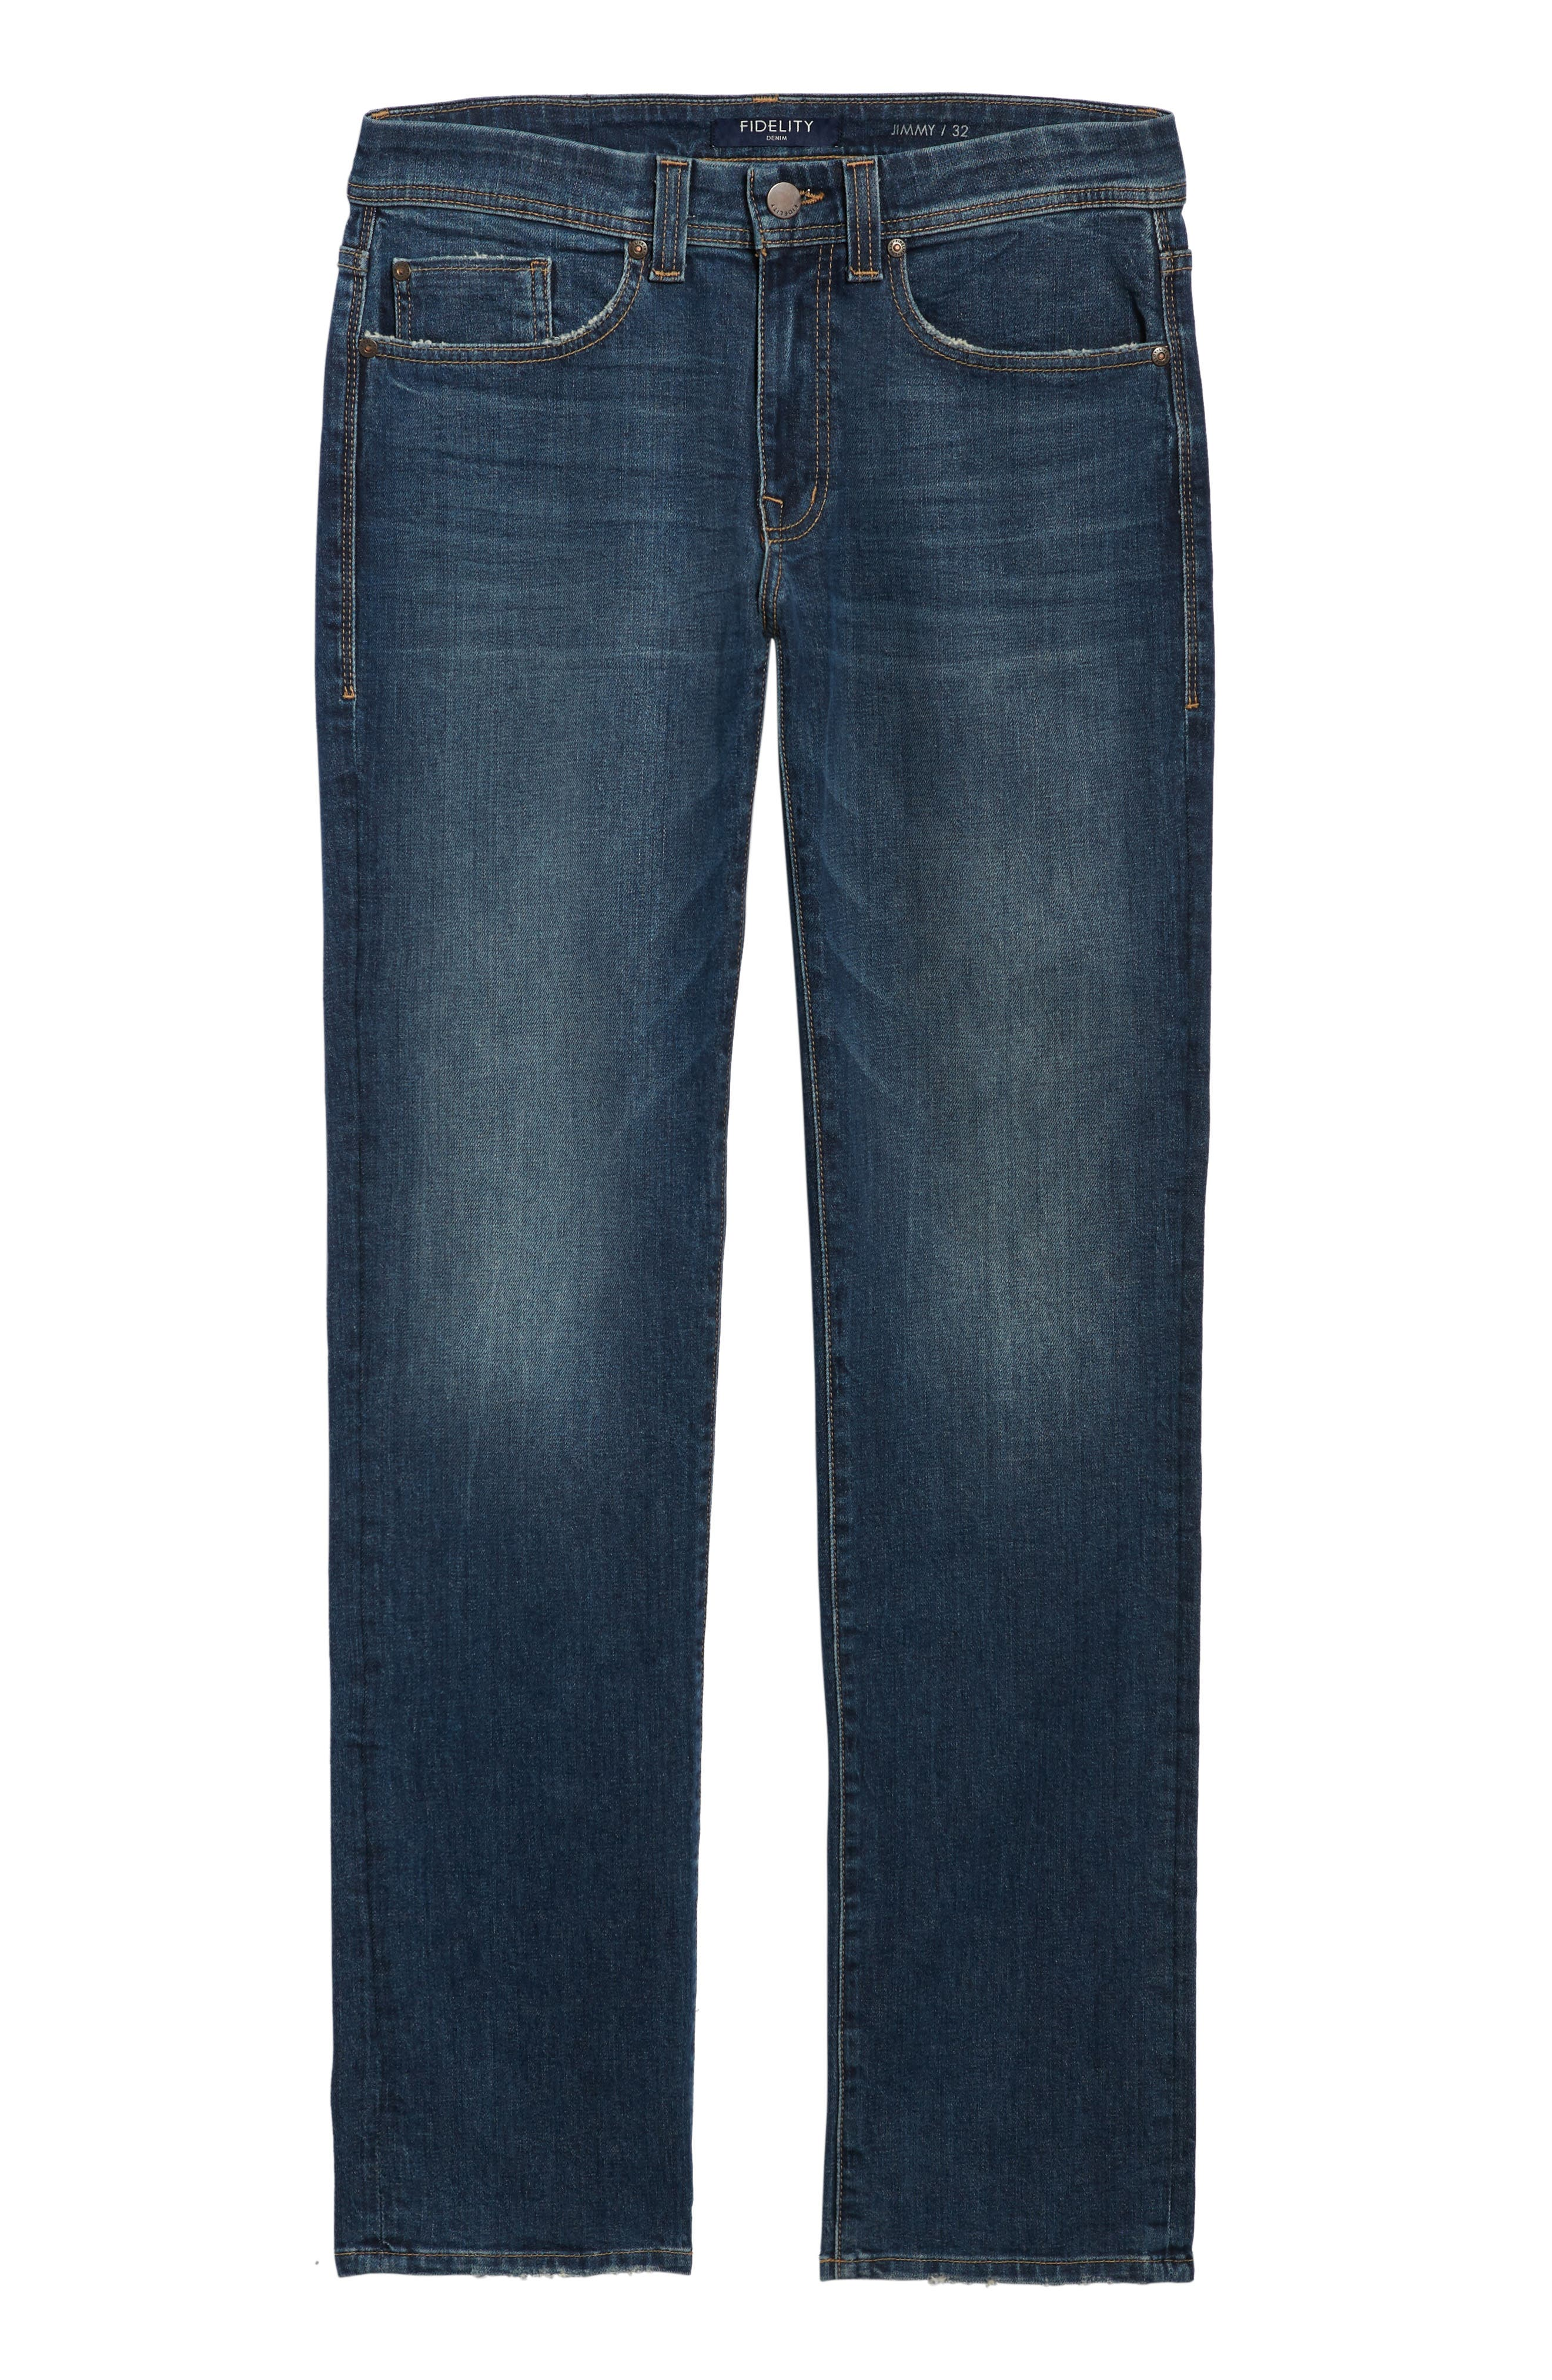 50-11 Relaxed Fit Jeans,                             Alternate thumbnail 6, color,                             GTO VINTAGE